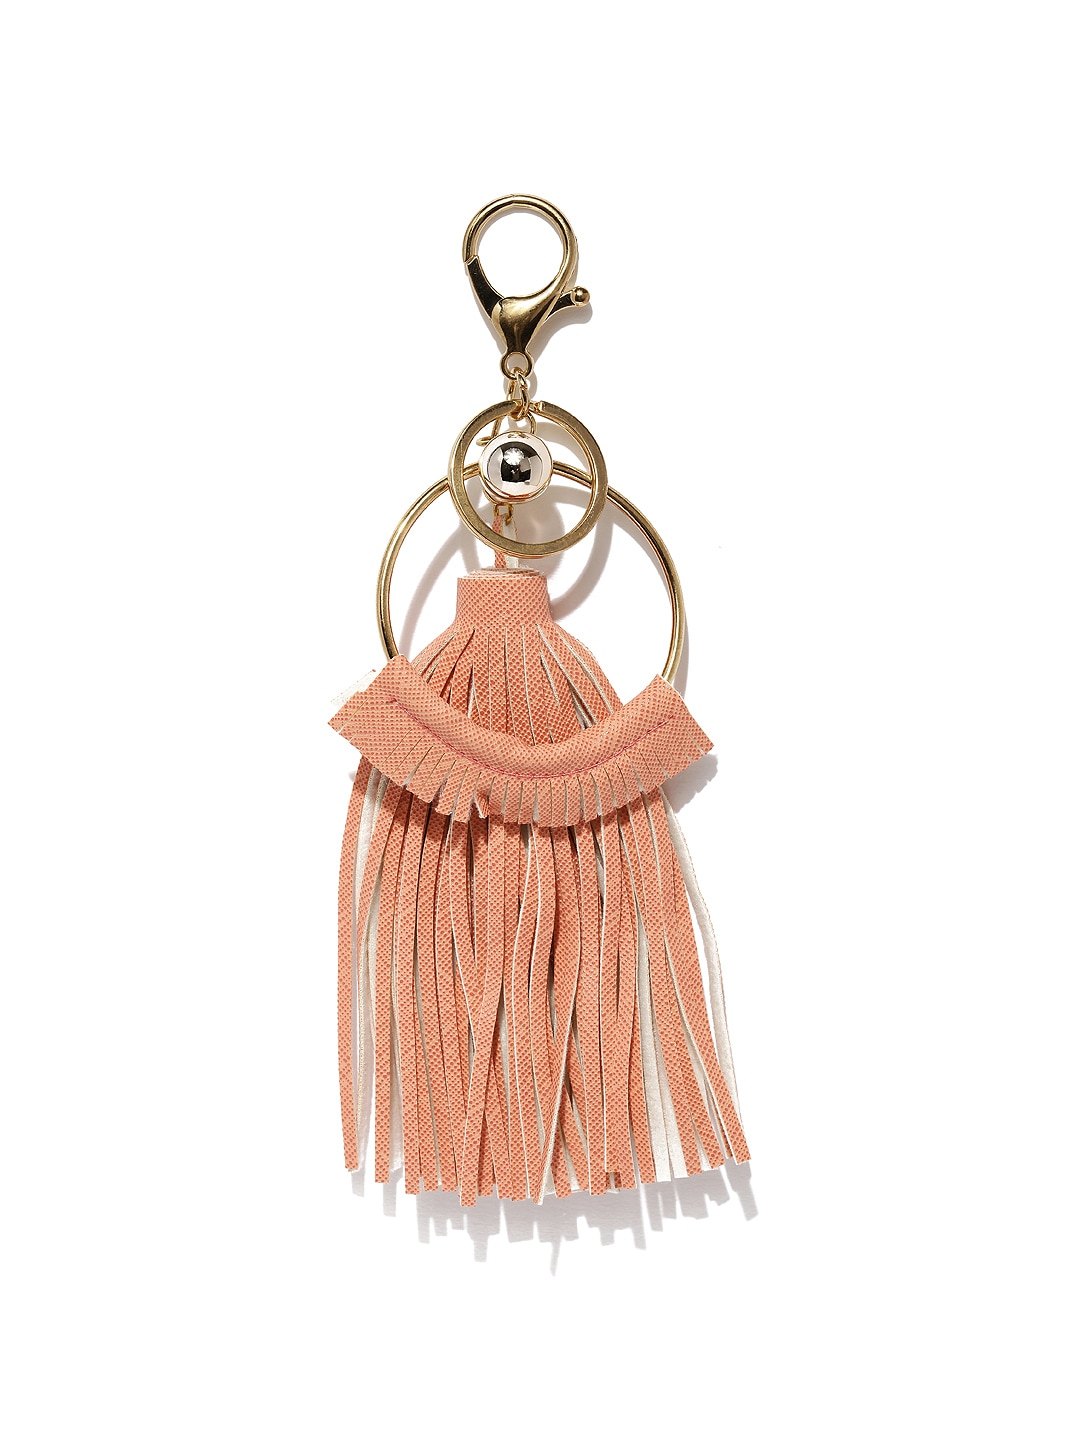 Key Chains - Buy Key Chains Online - Myntra 5913b0add